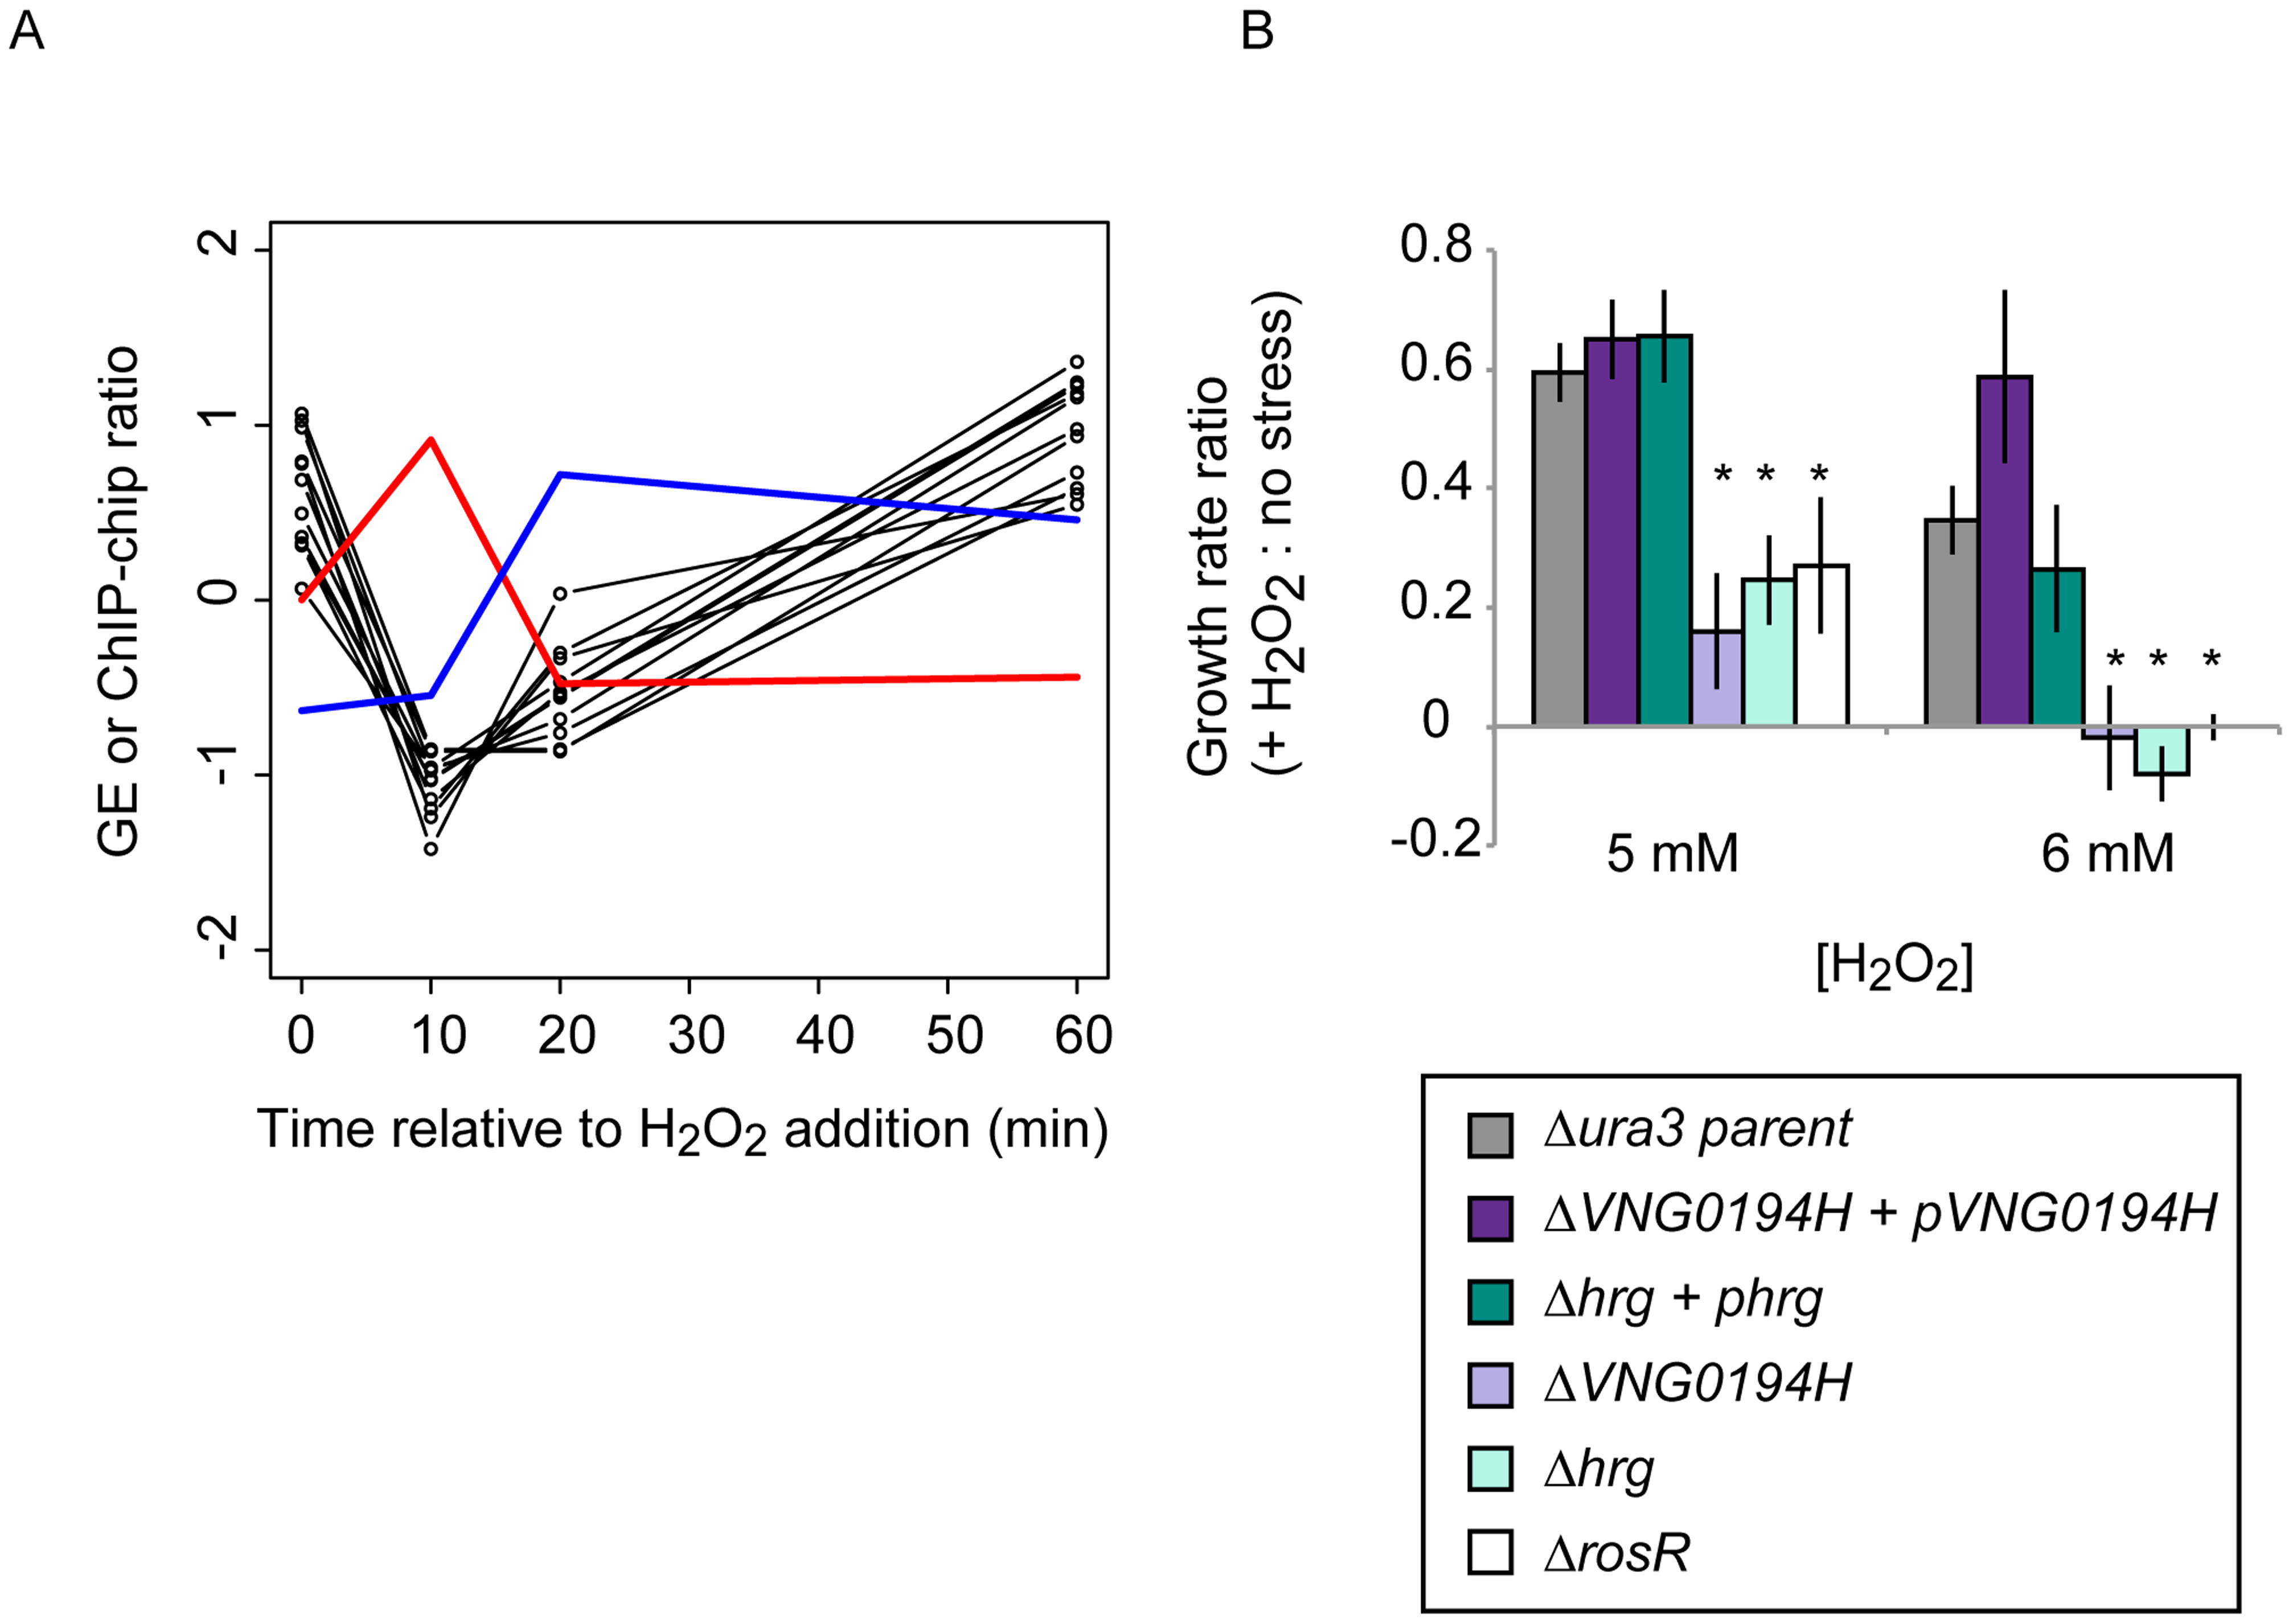 Dynamic RosR regulation of other TFs has functional consequences during ROS stress.